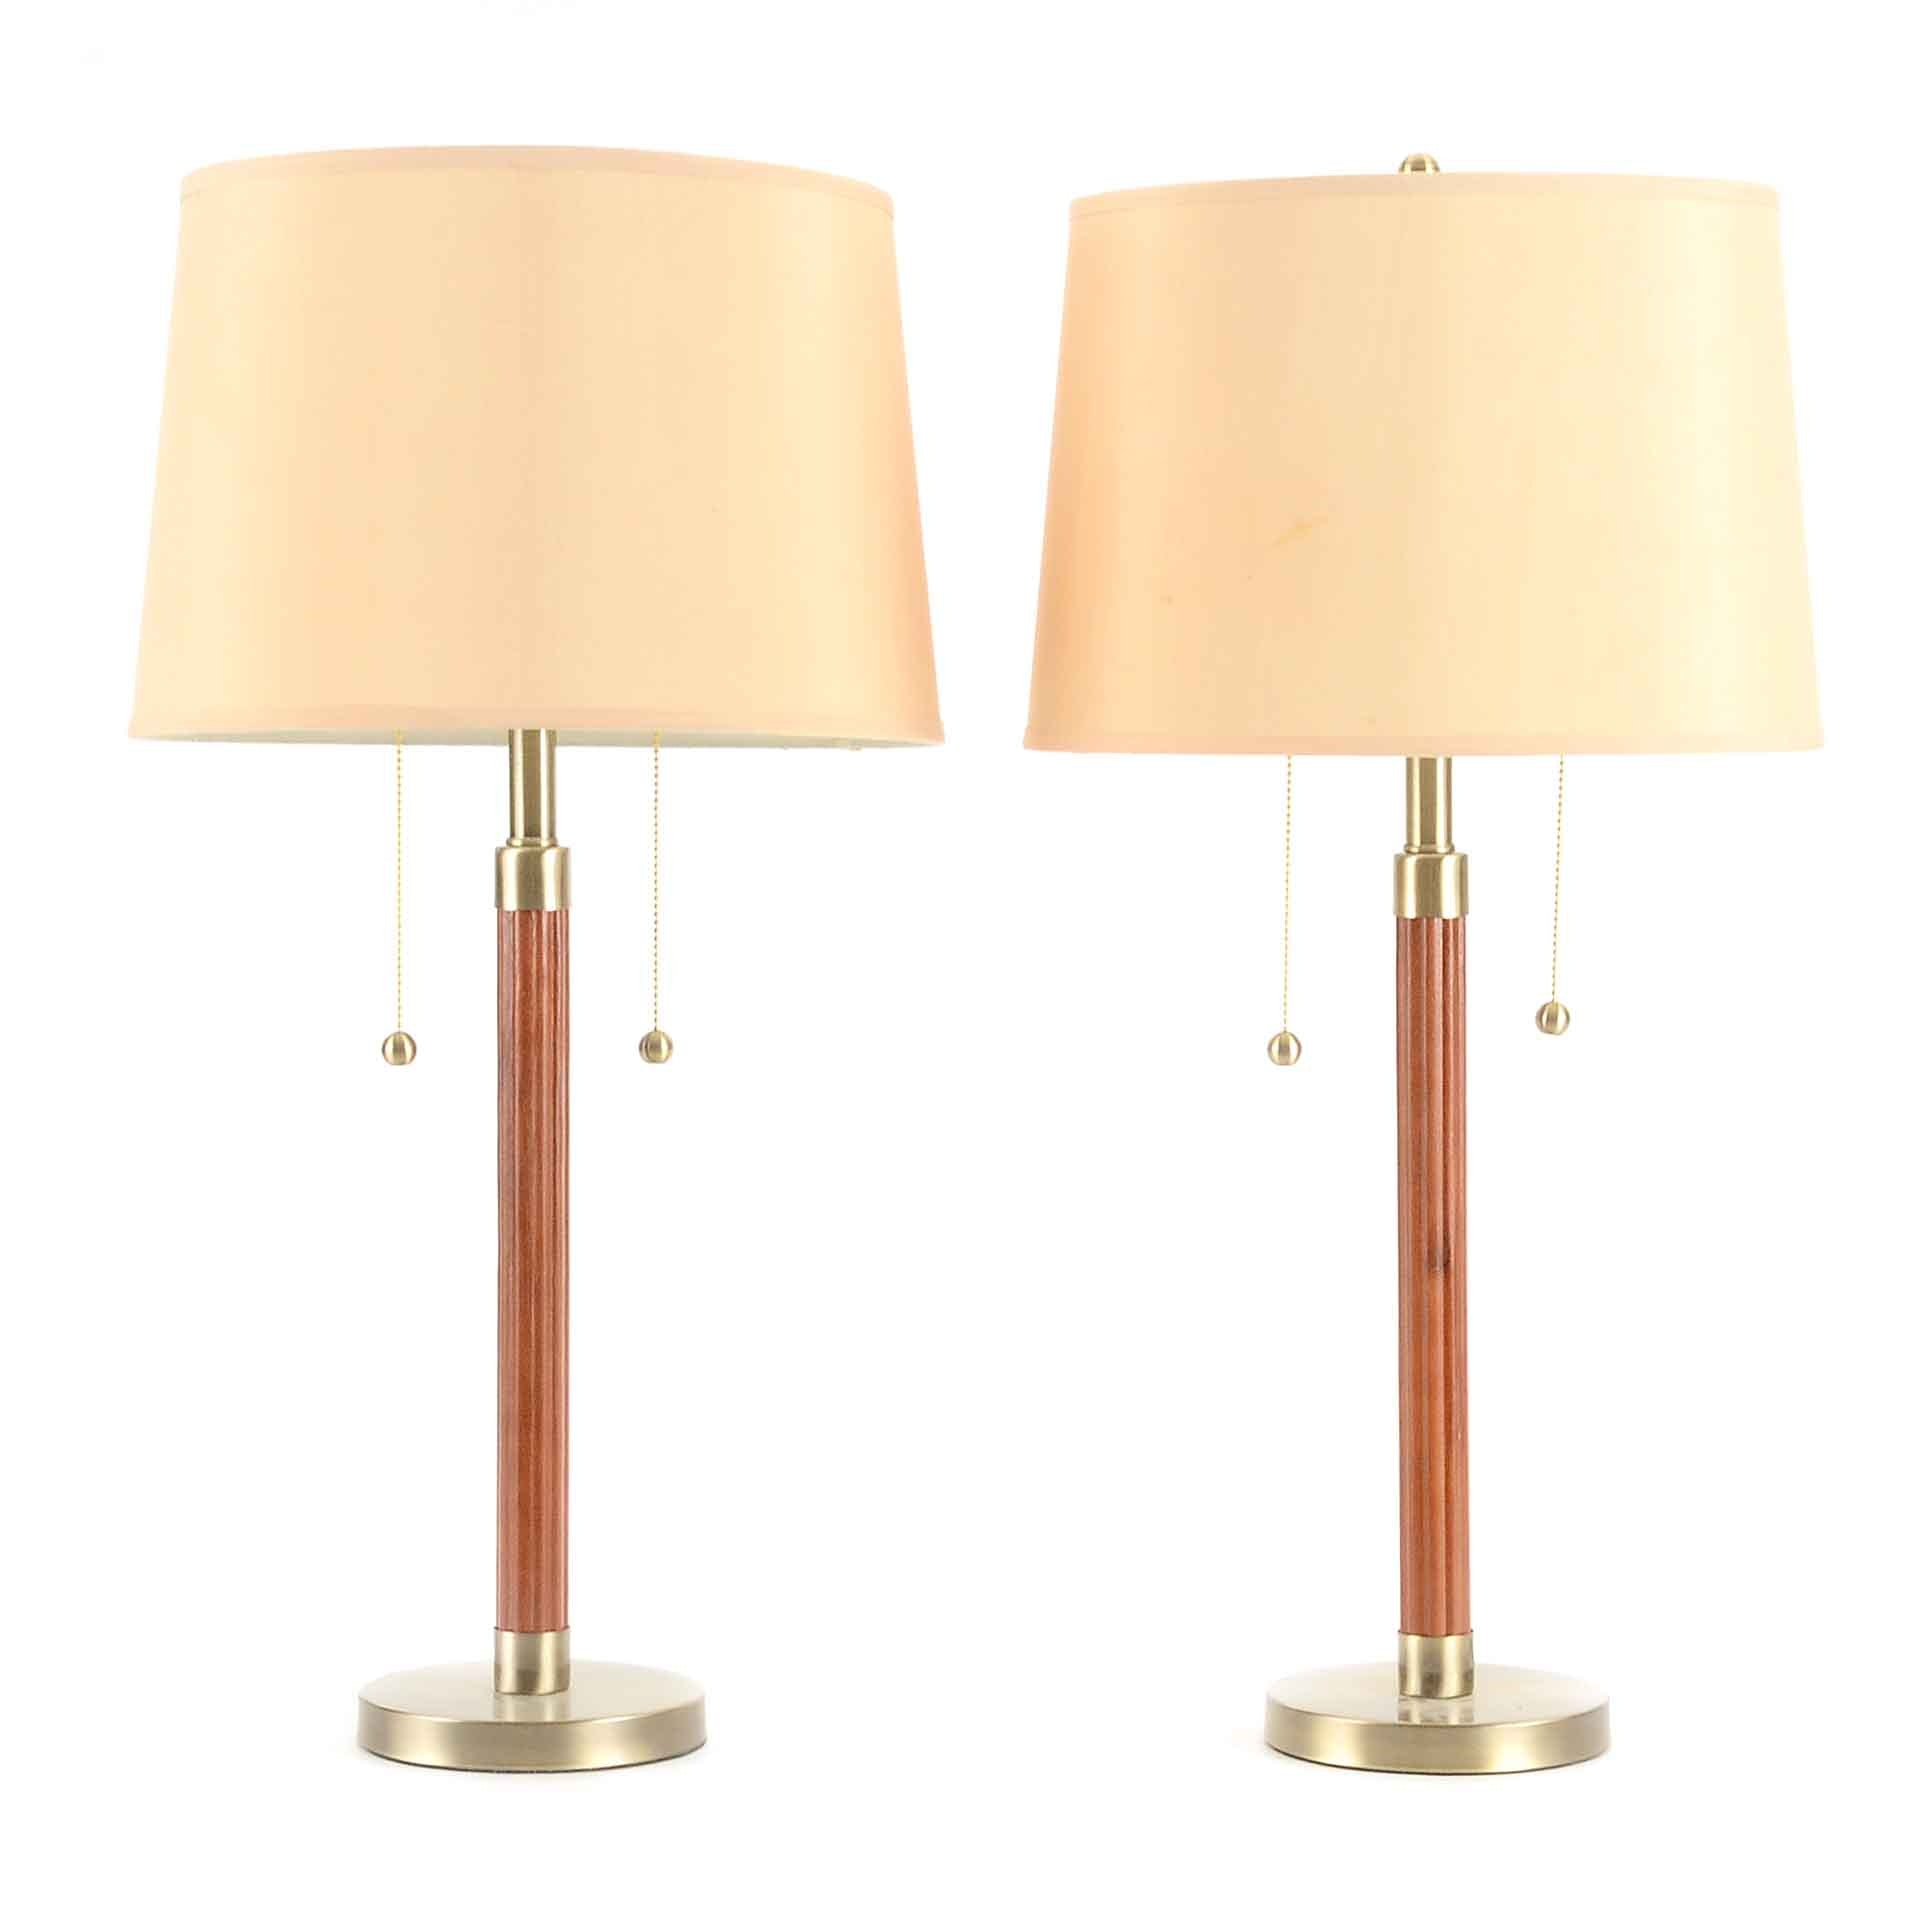 Pacific Coast Lighting Table Lamps.